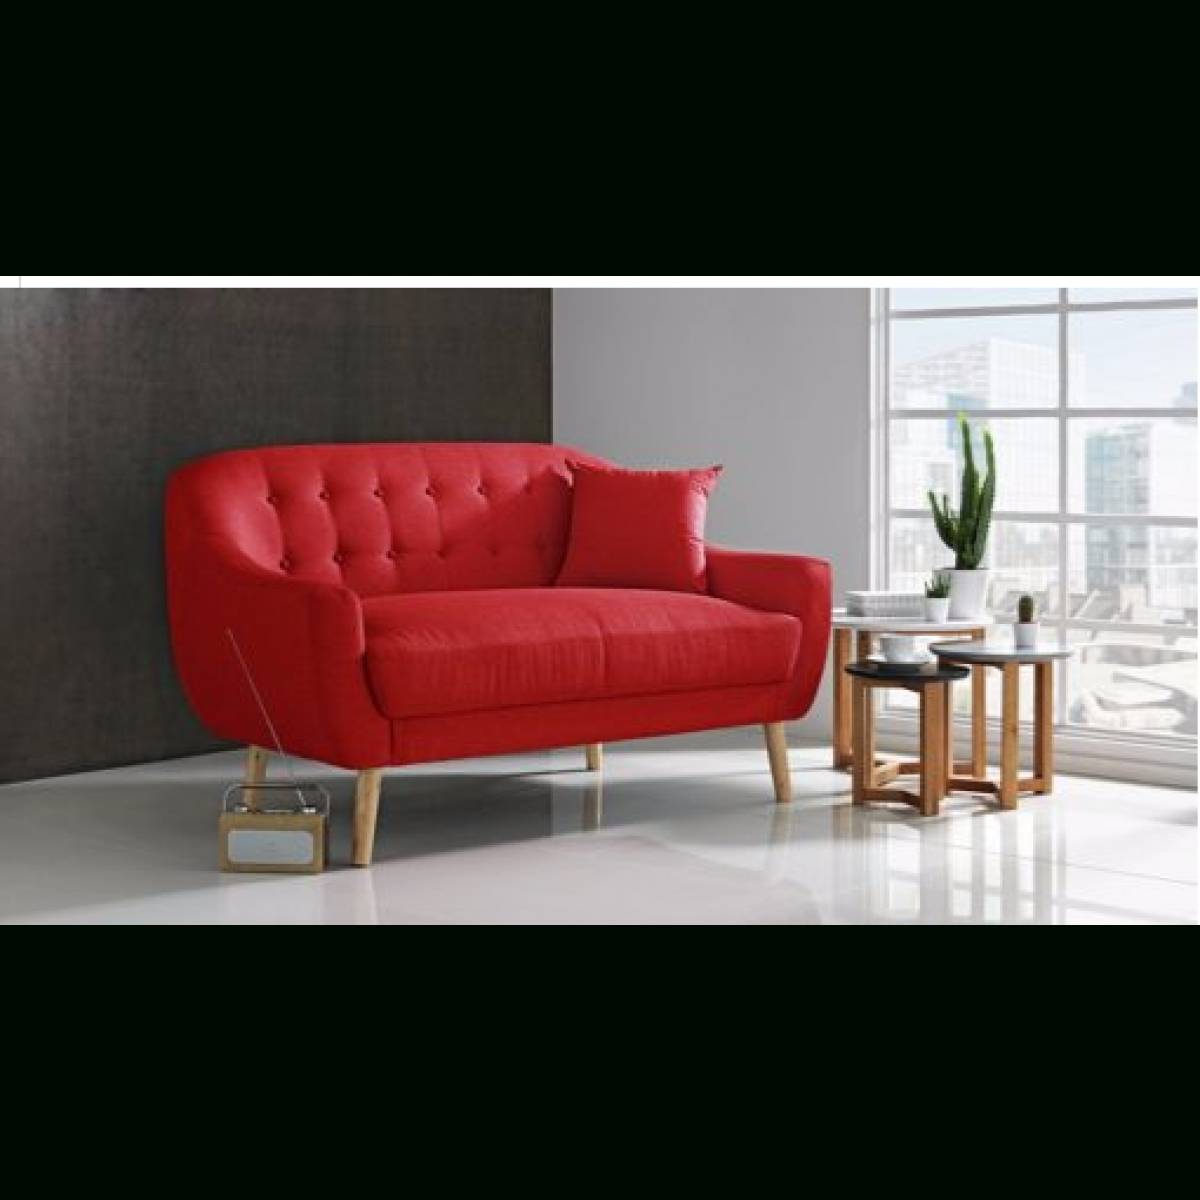 2019 Fabric Sofas Within Hygena Lexie Retro Compact Fabric 2 Seater Sofa – Poppy Red (View 2 of 20)